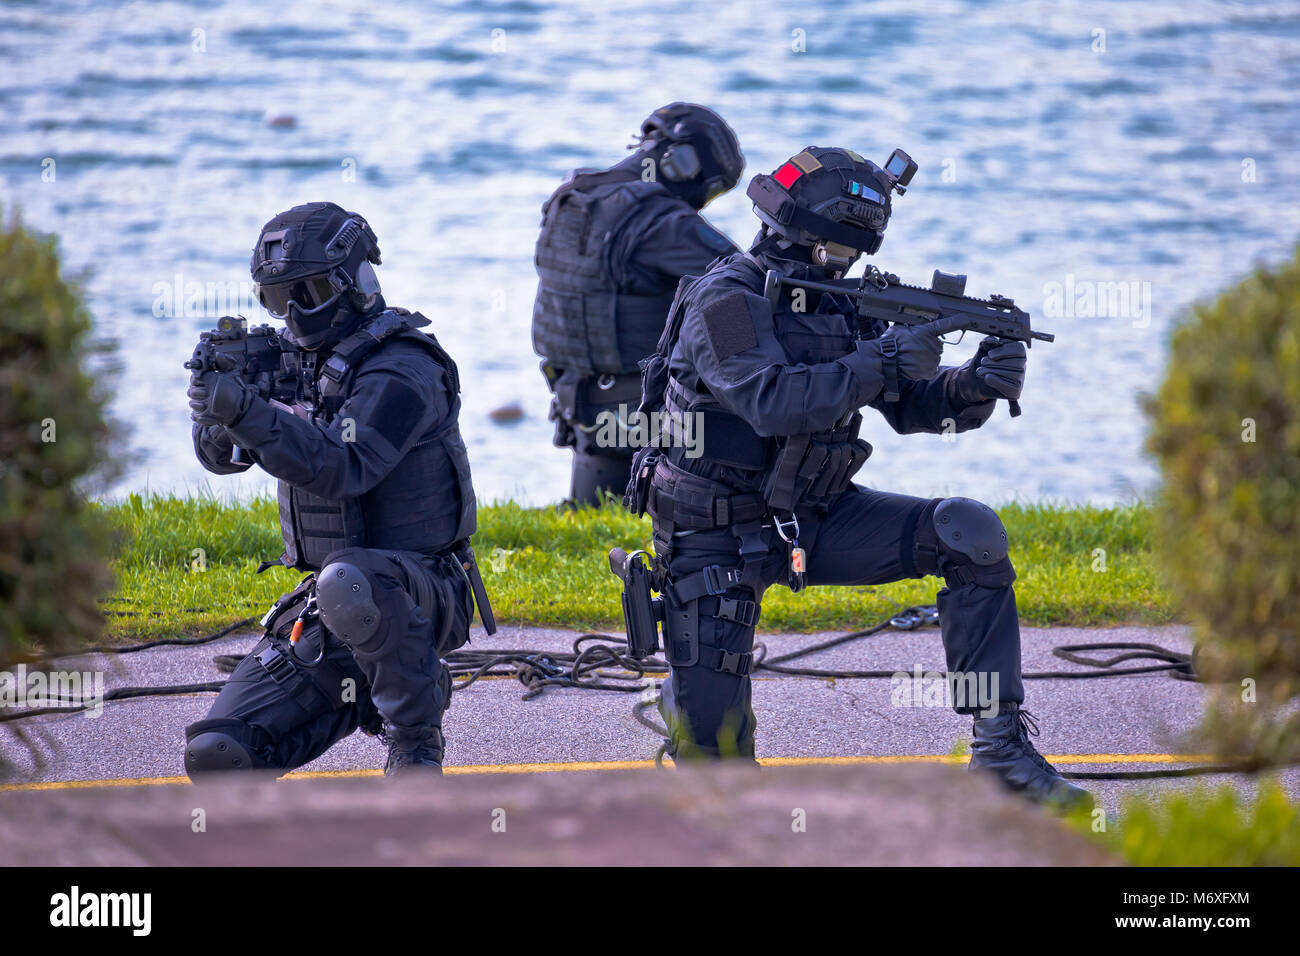 Special forces tactical team of three in action, unmarked and unrecognizable swat team - Stock Image